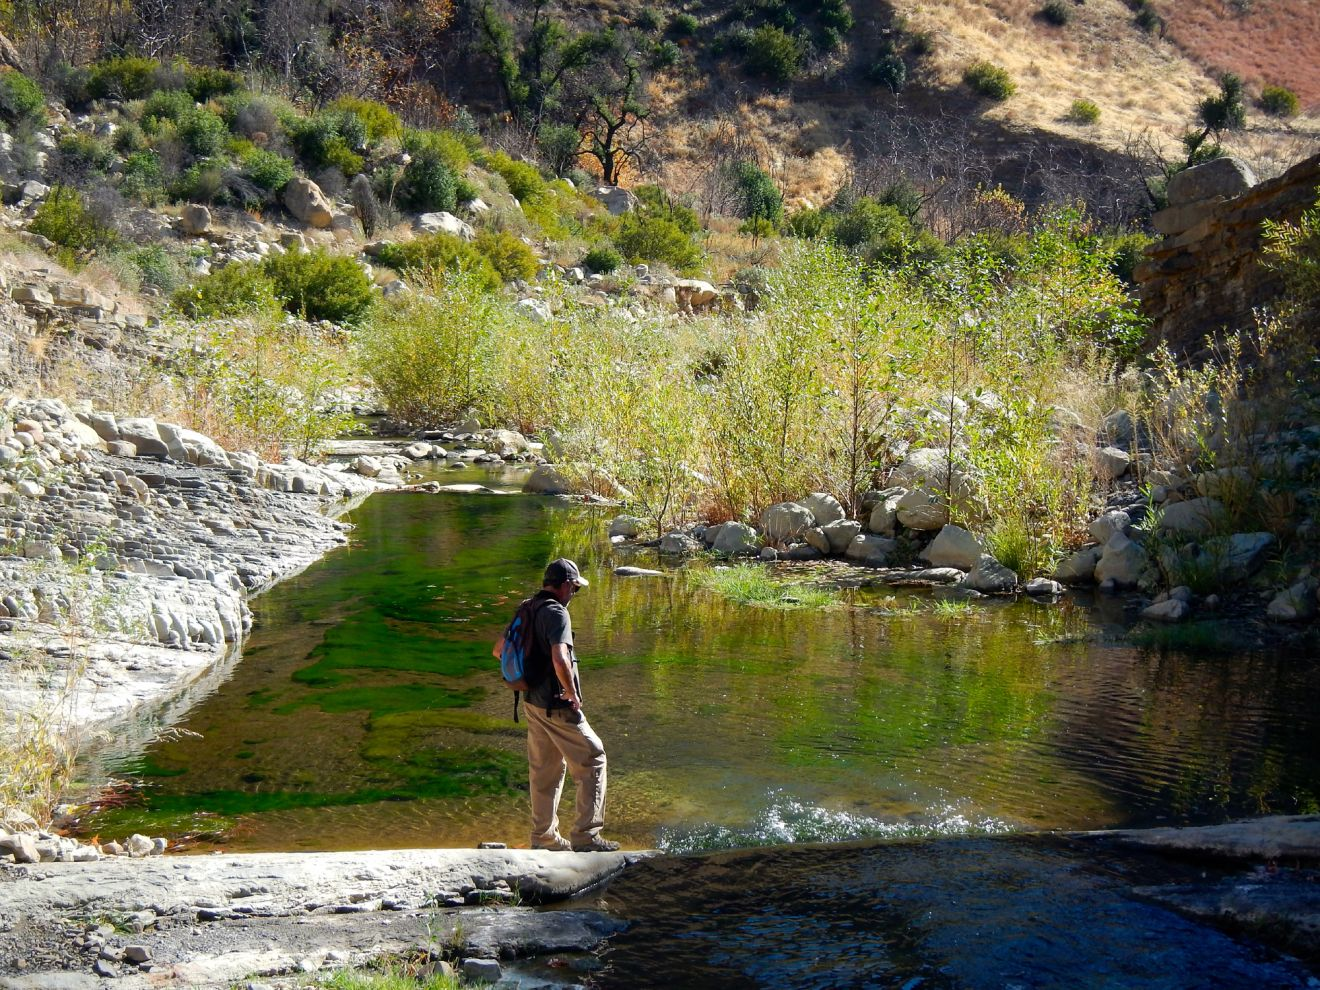 A hiker at the Matilija pools above Flat Rock.